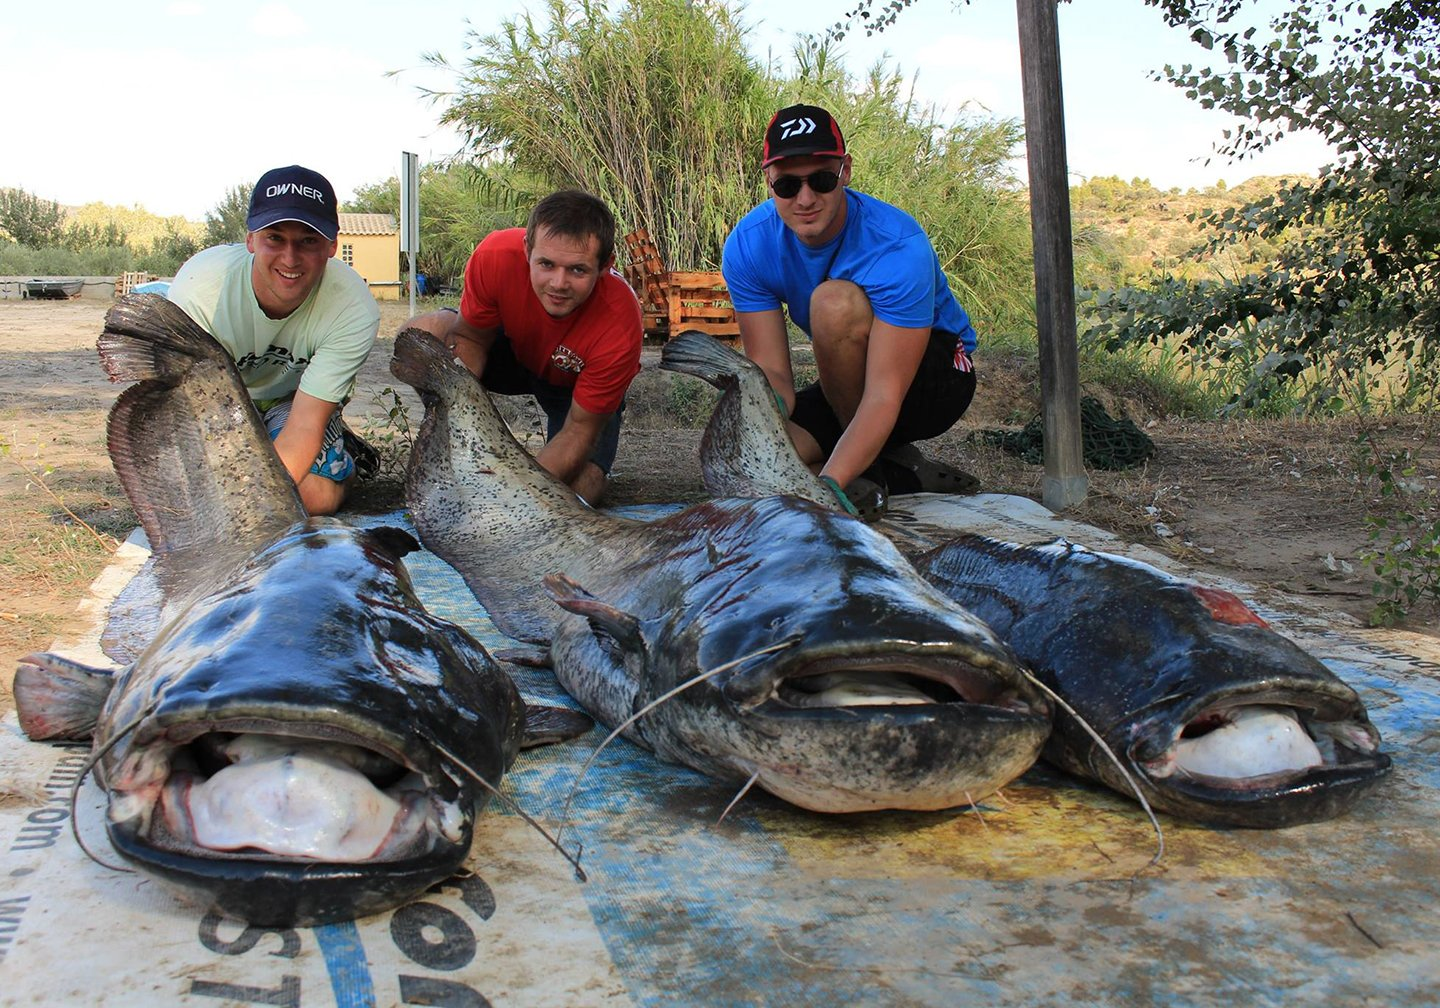 Three anglers posing with giant Wels Catfish, a frequent target on bucket list fishing trips.